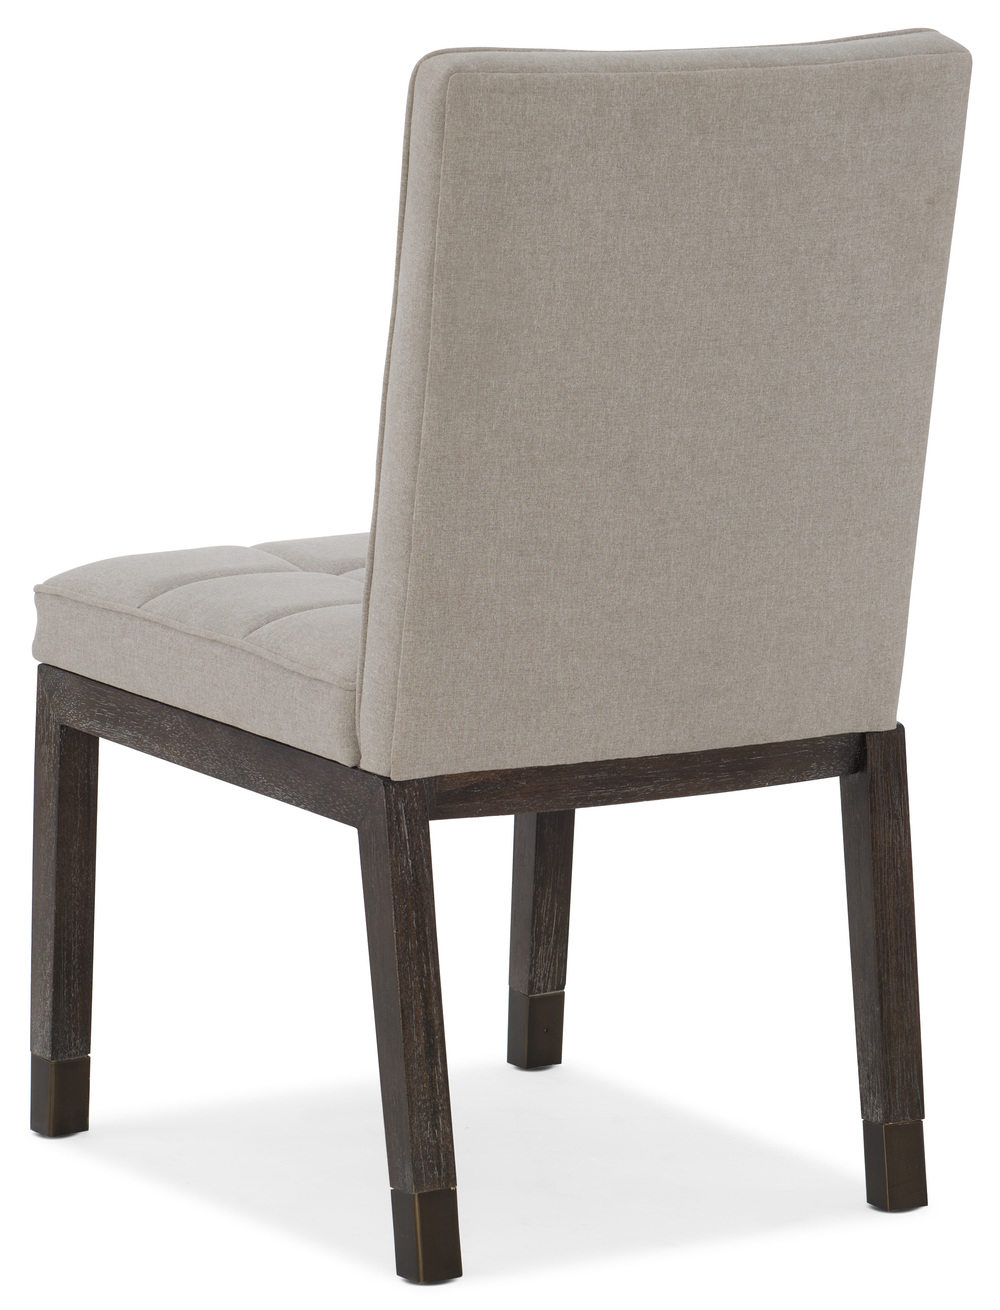 Hooker Furniture - Cupertino Upholstered Side Chair